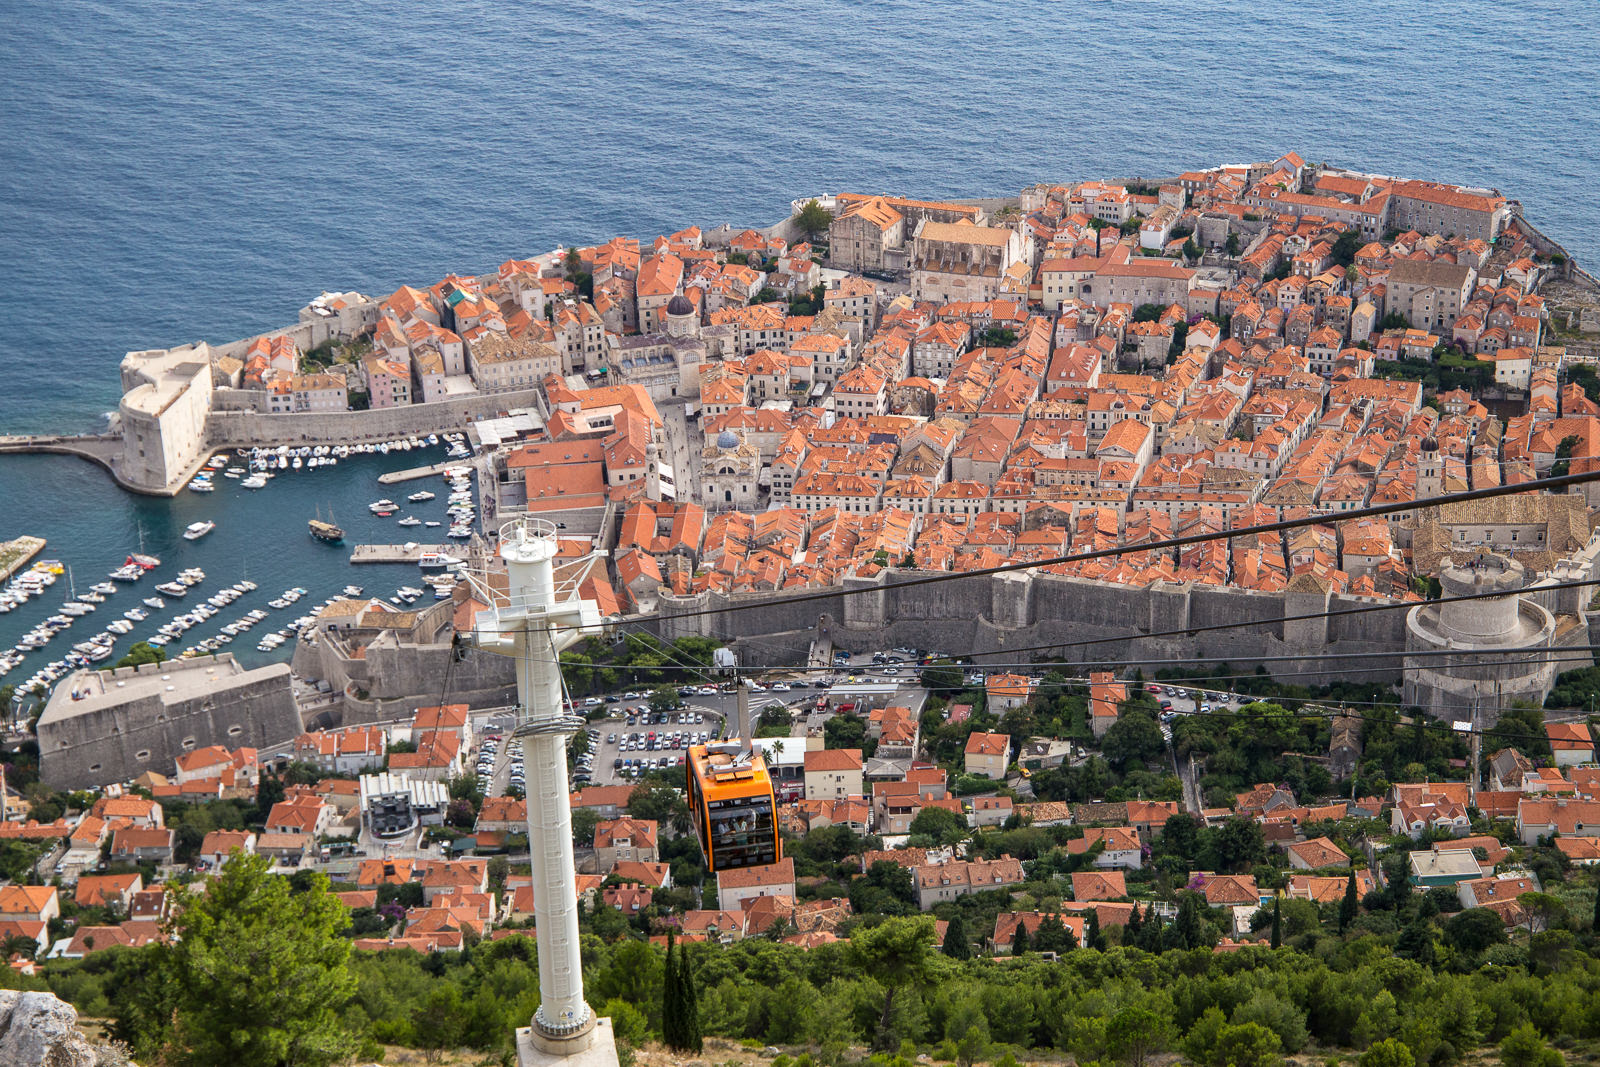 Top 5 Reisetipps Dubrovnik: Sightseeing & Restaurants